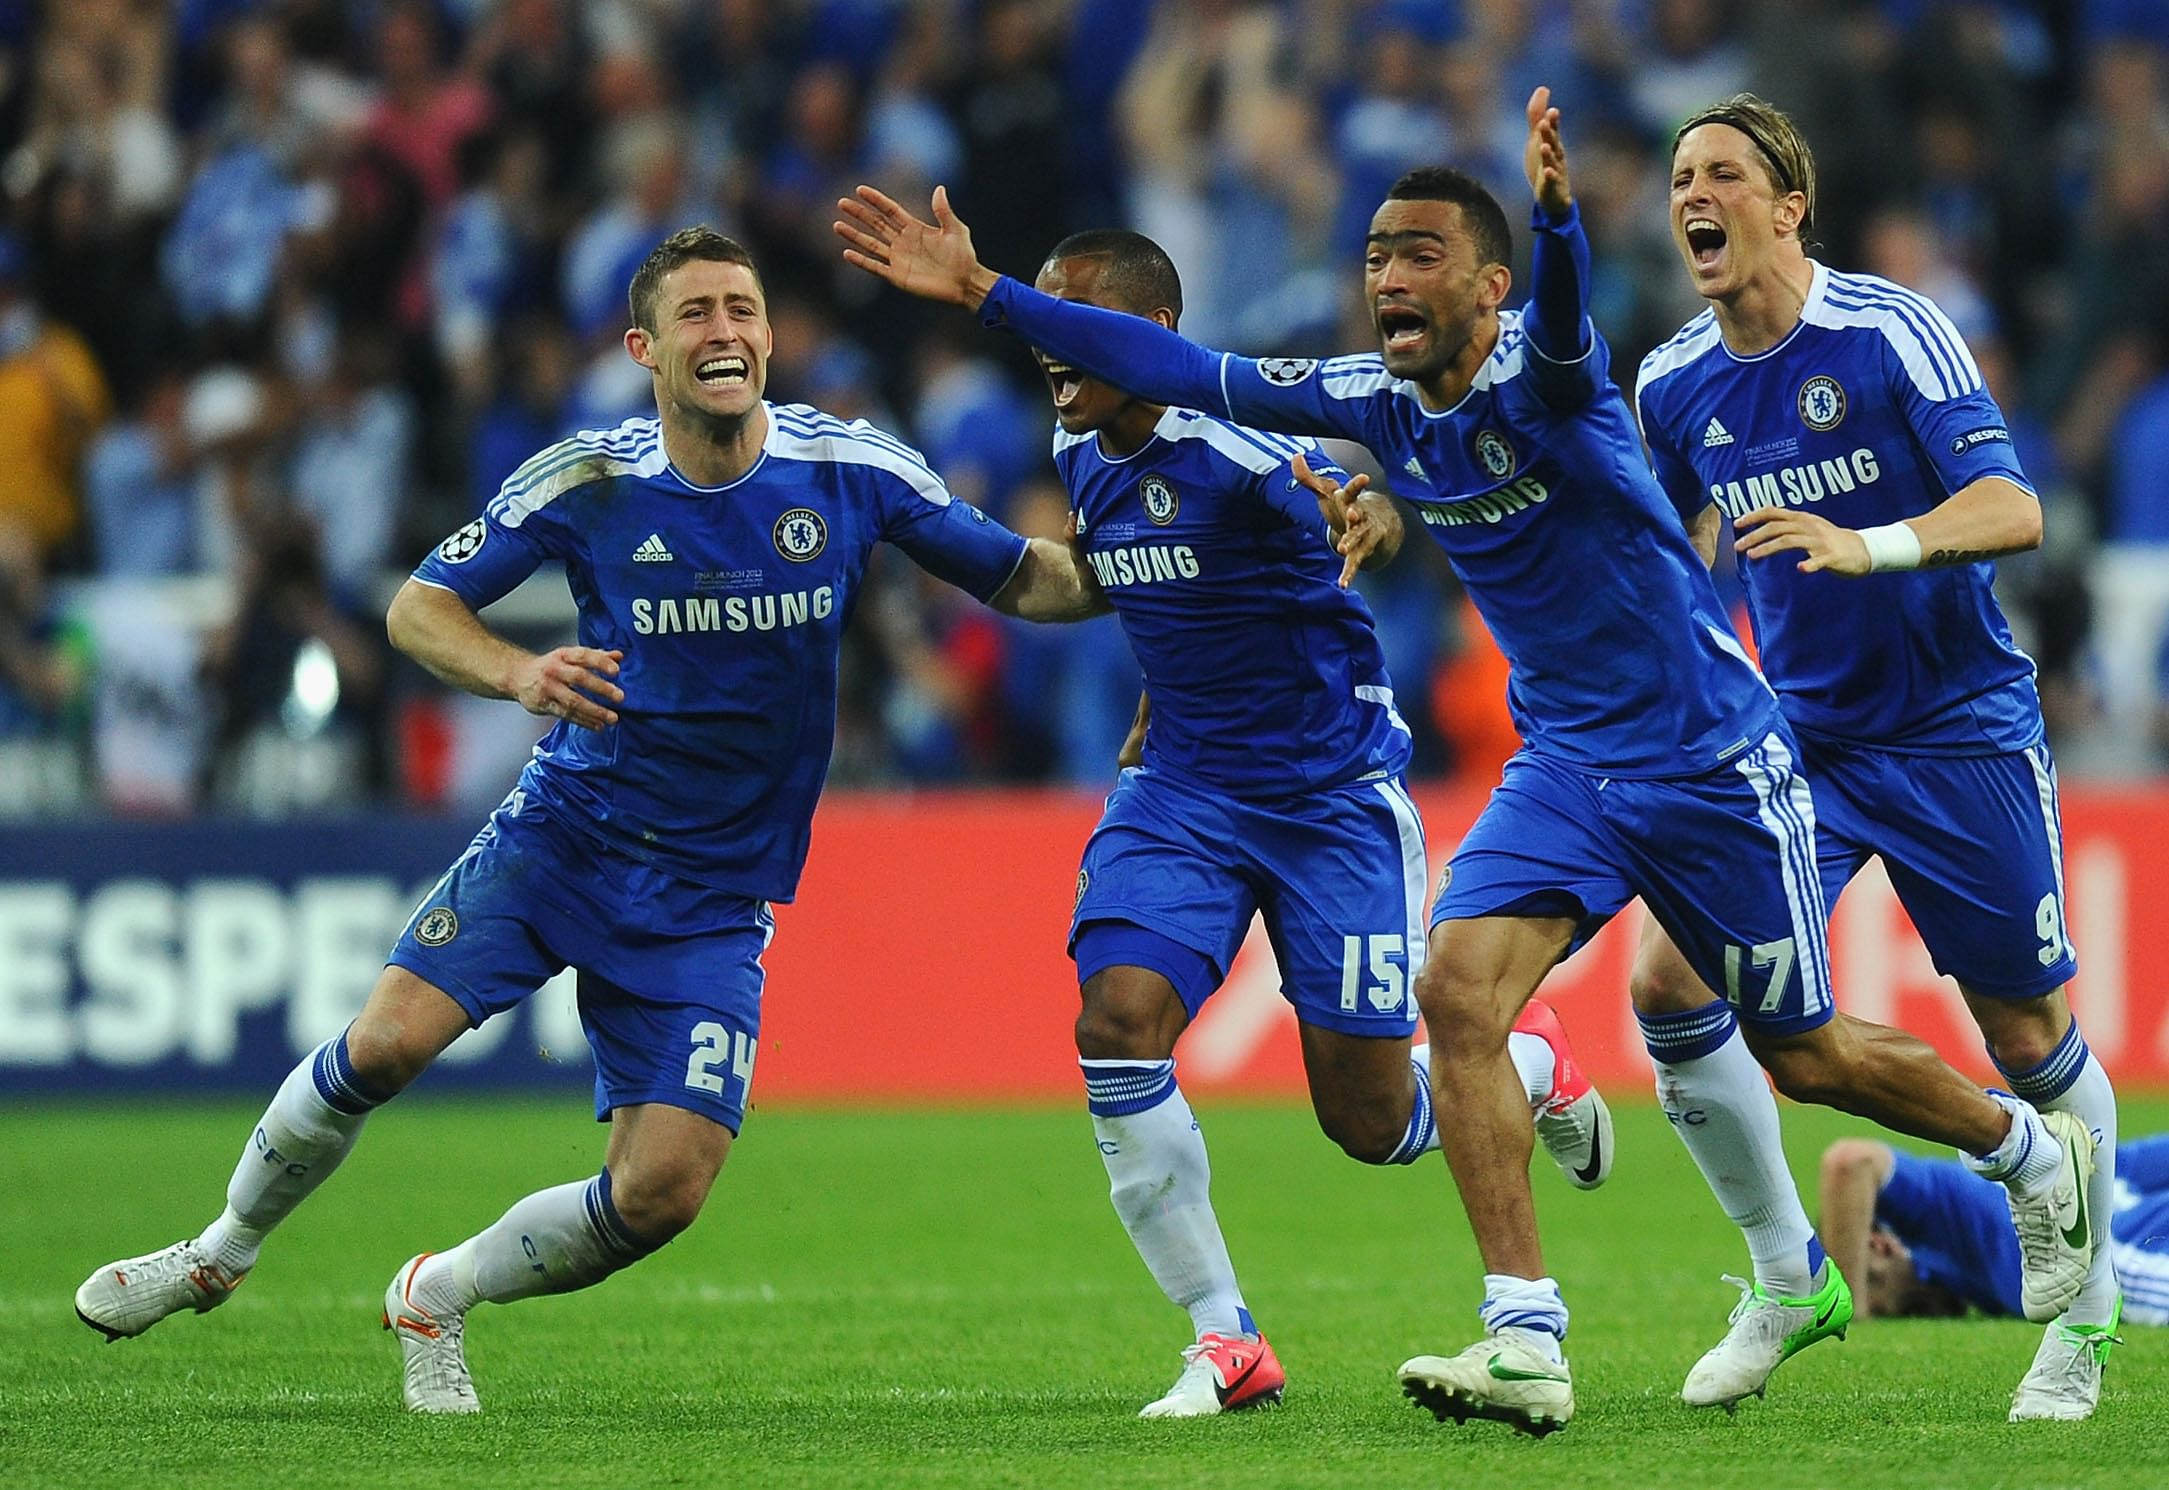 Top 5 matches of the year for Chelsea Football Club